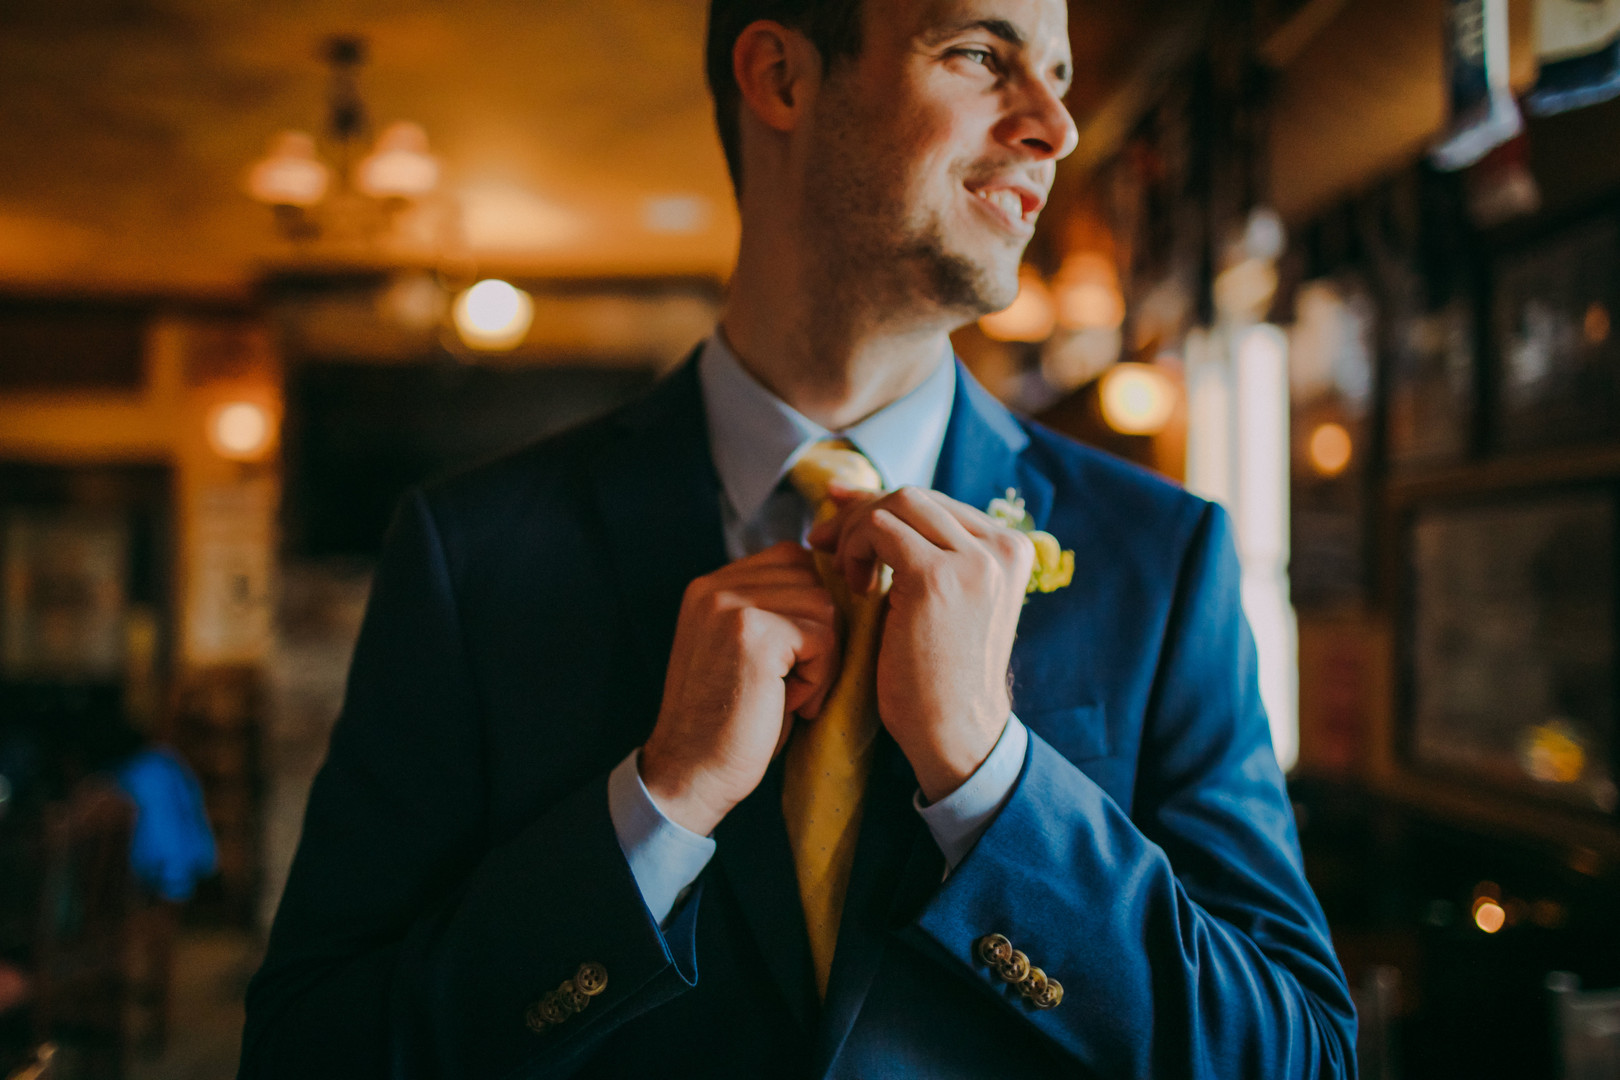 A close up of a groom tying his yellow tie